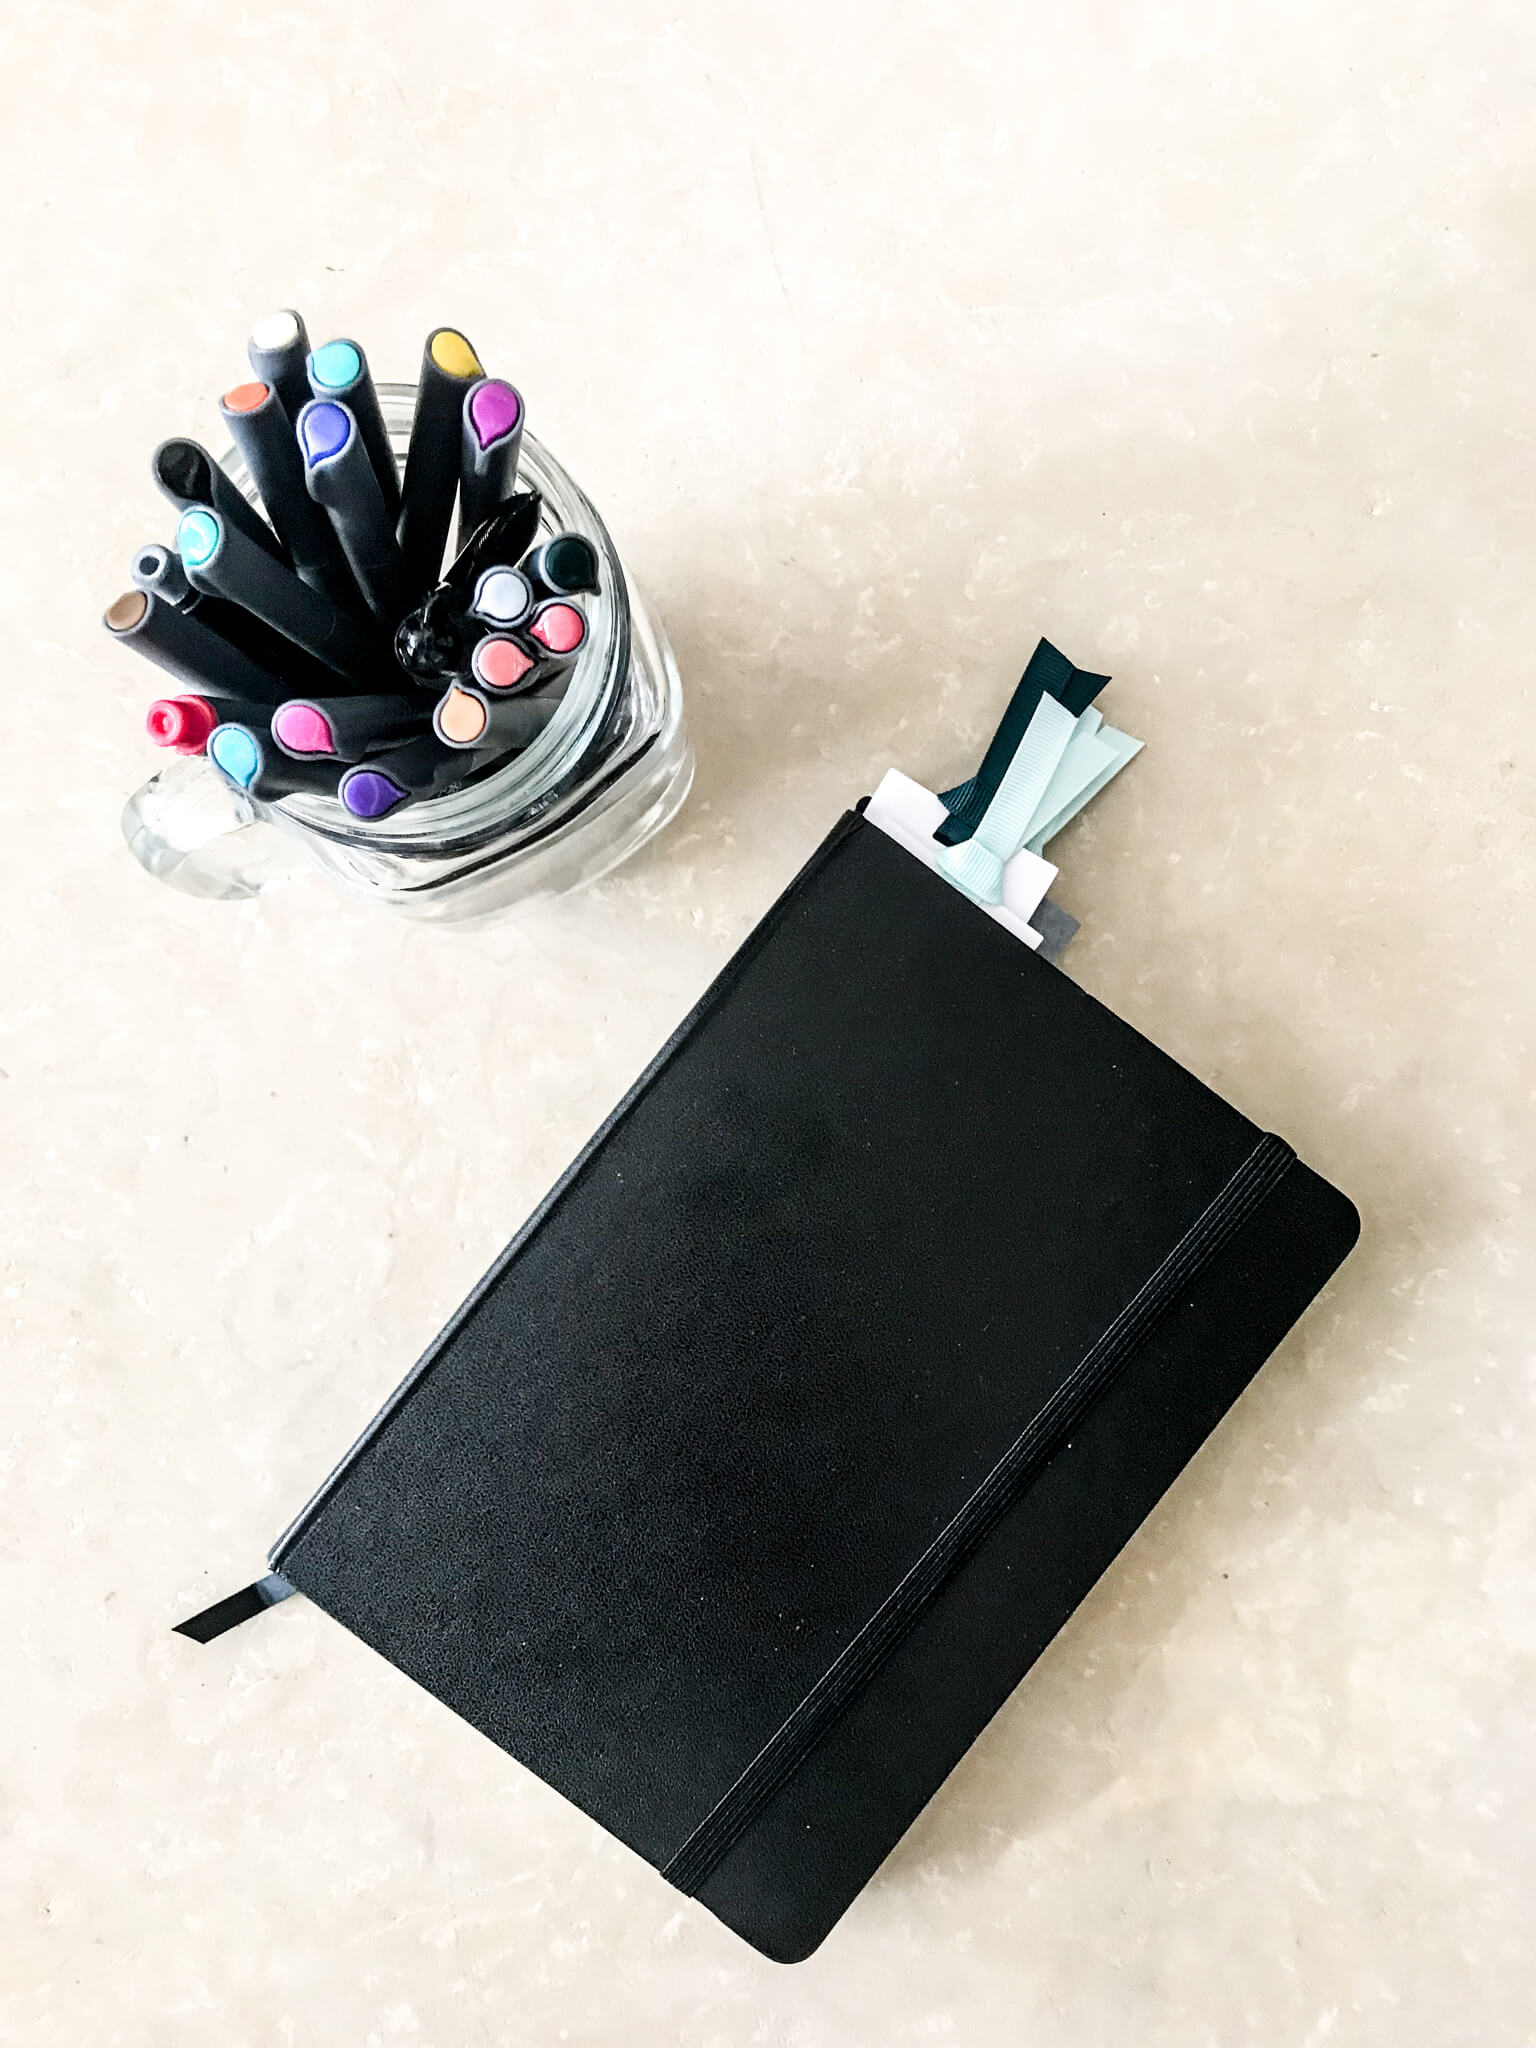 2019 Bullet Journal www.sarahkayhoffman.com #bulletjournal #bujo #healthyliving #mompreneur BUJO from Amazon